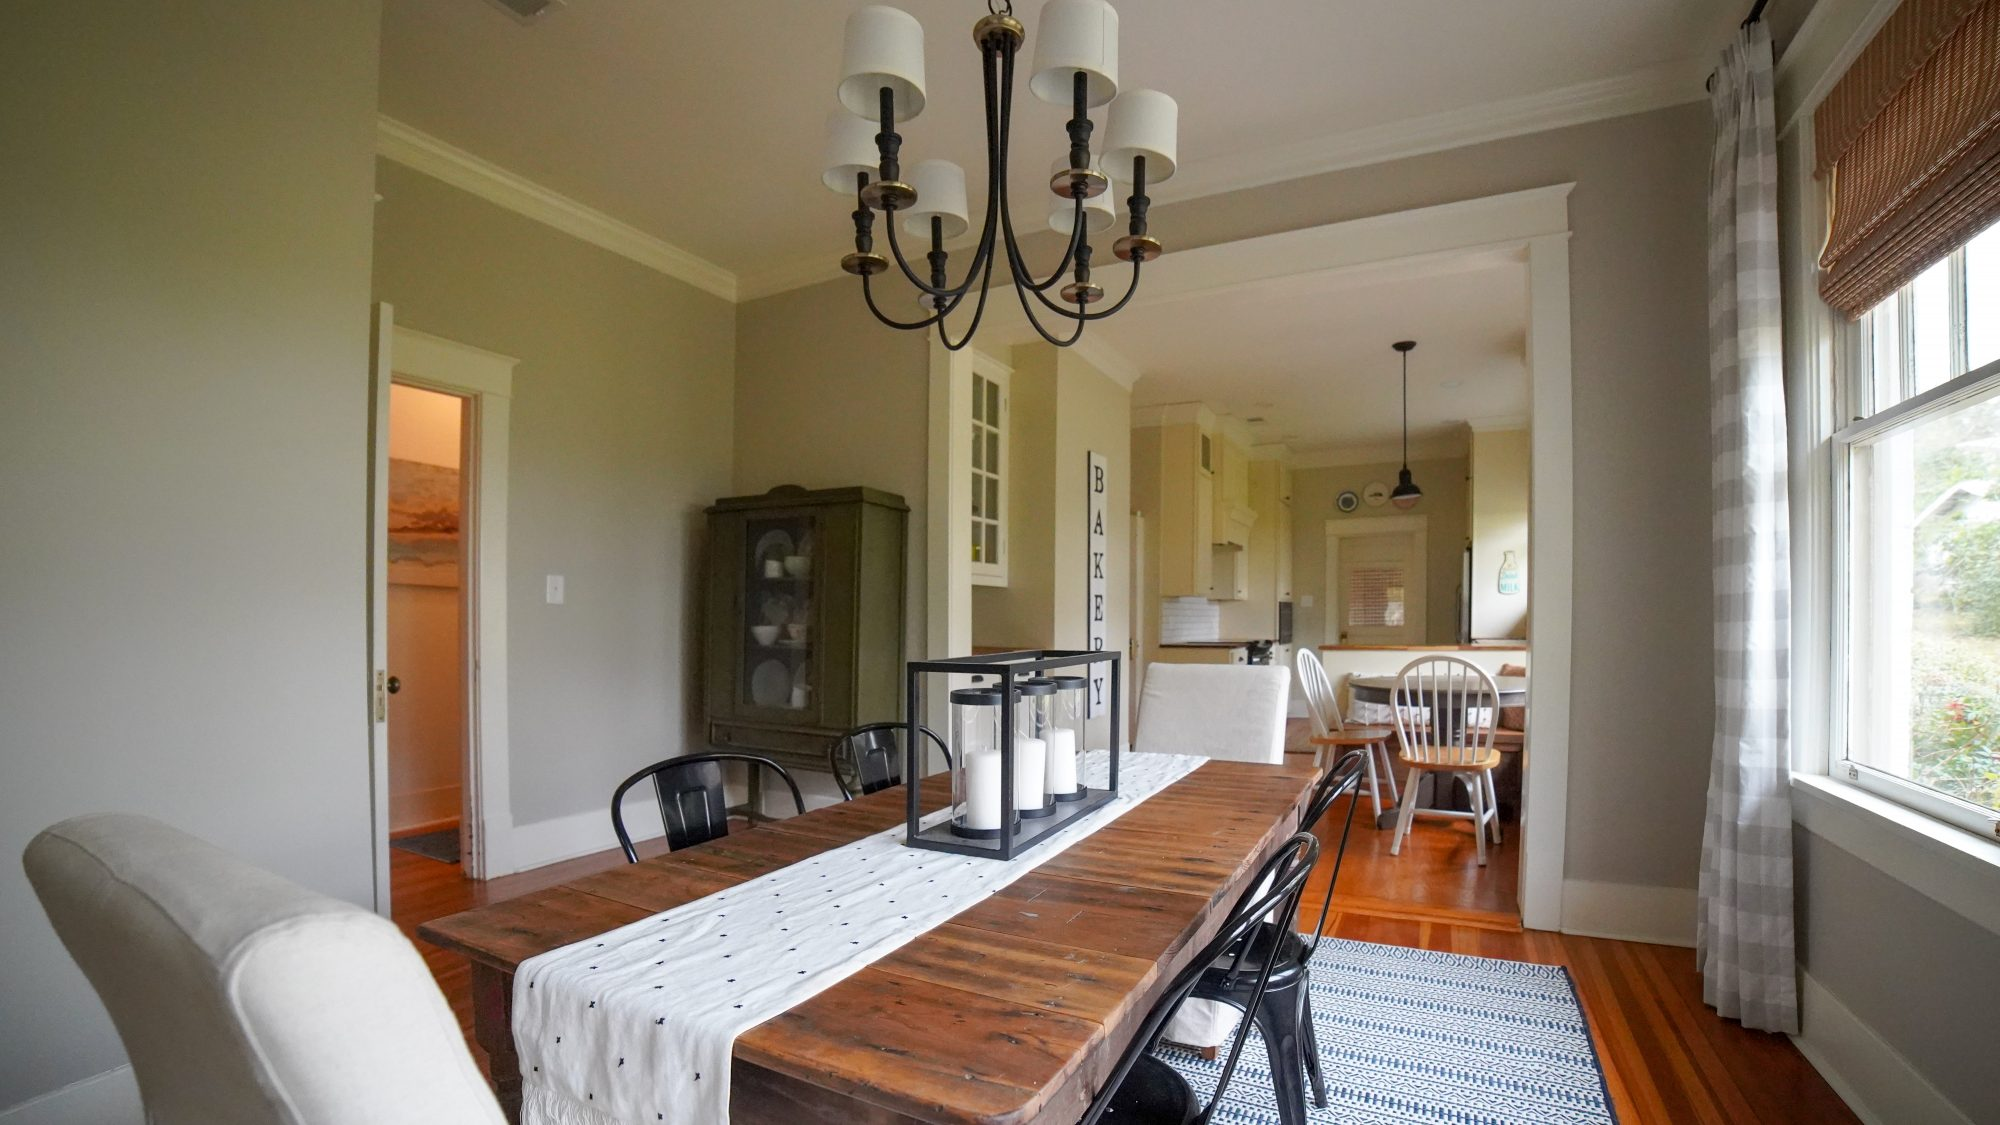 Home Town Laurel Mississippi Home for Sale Season 2 Cottage Dining Room